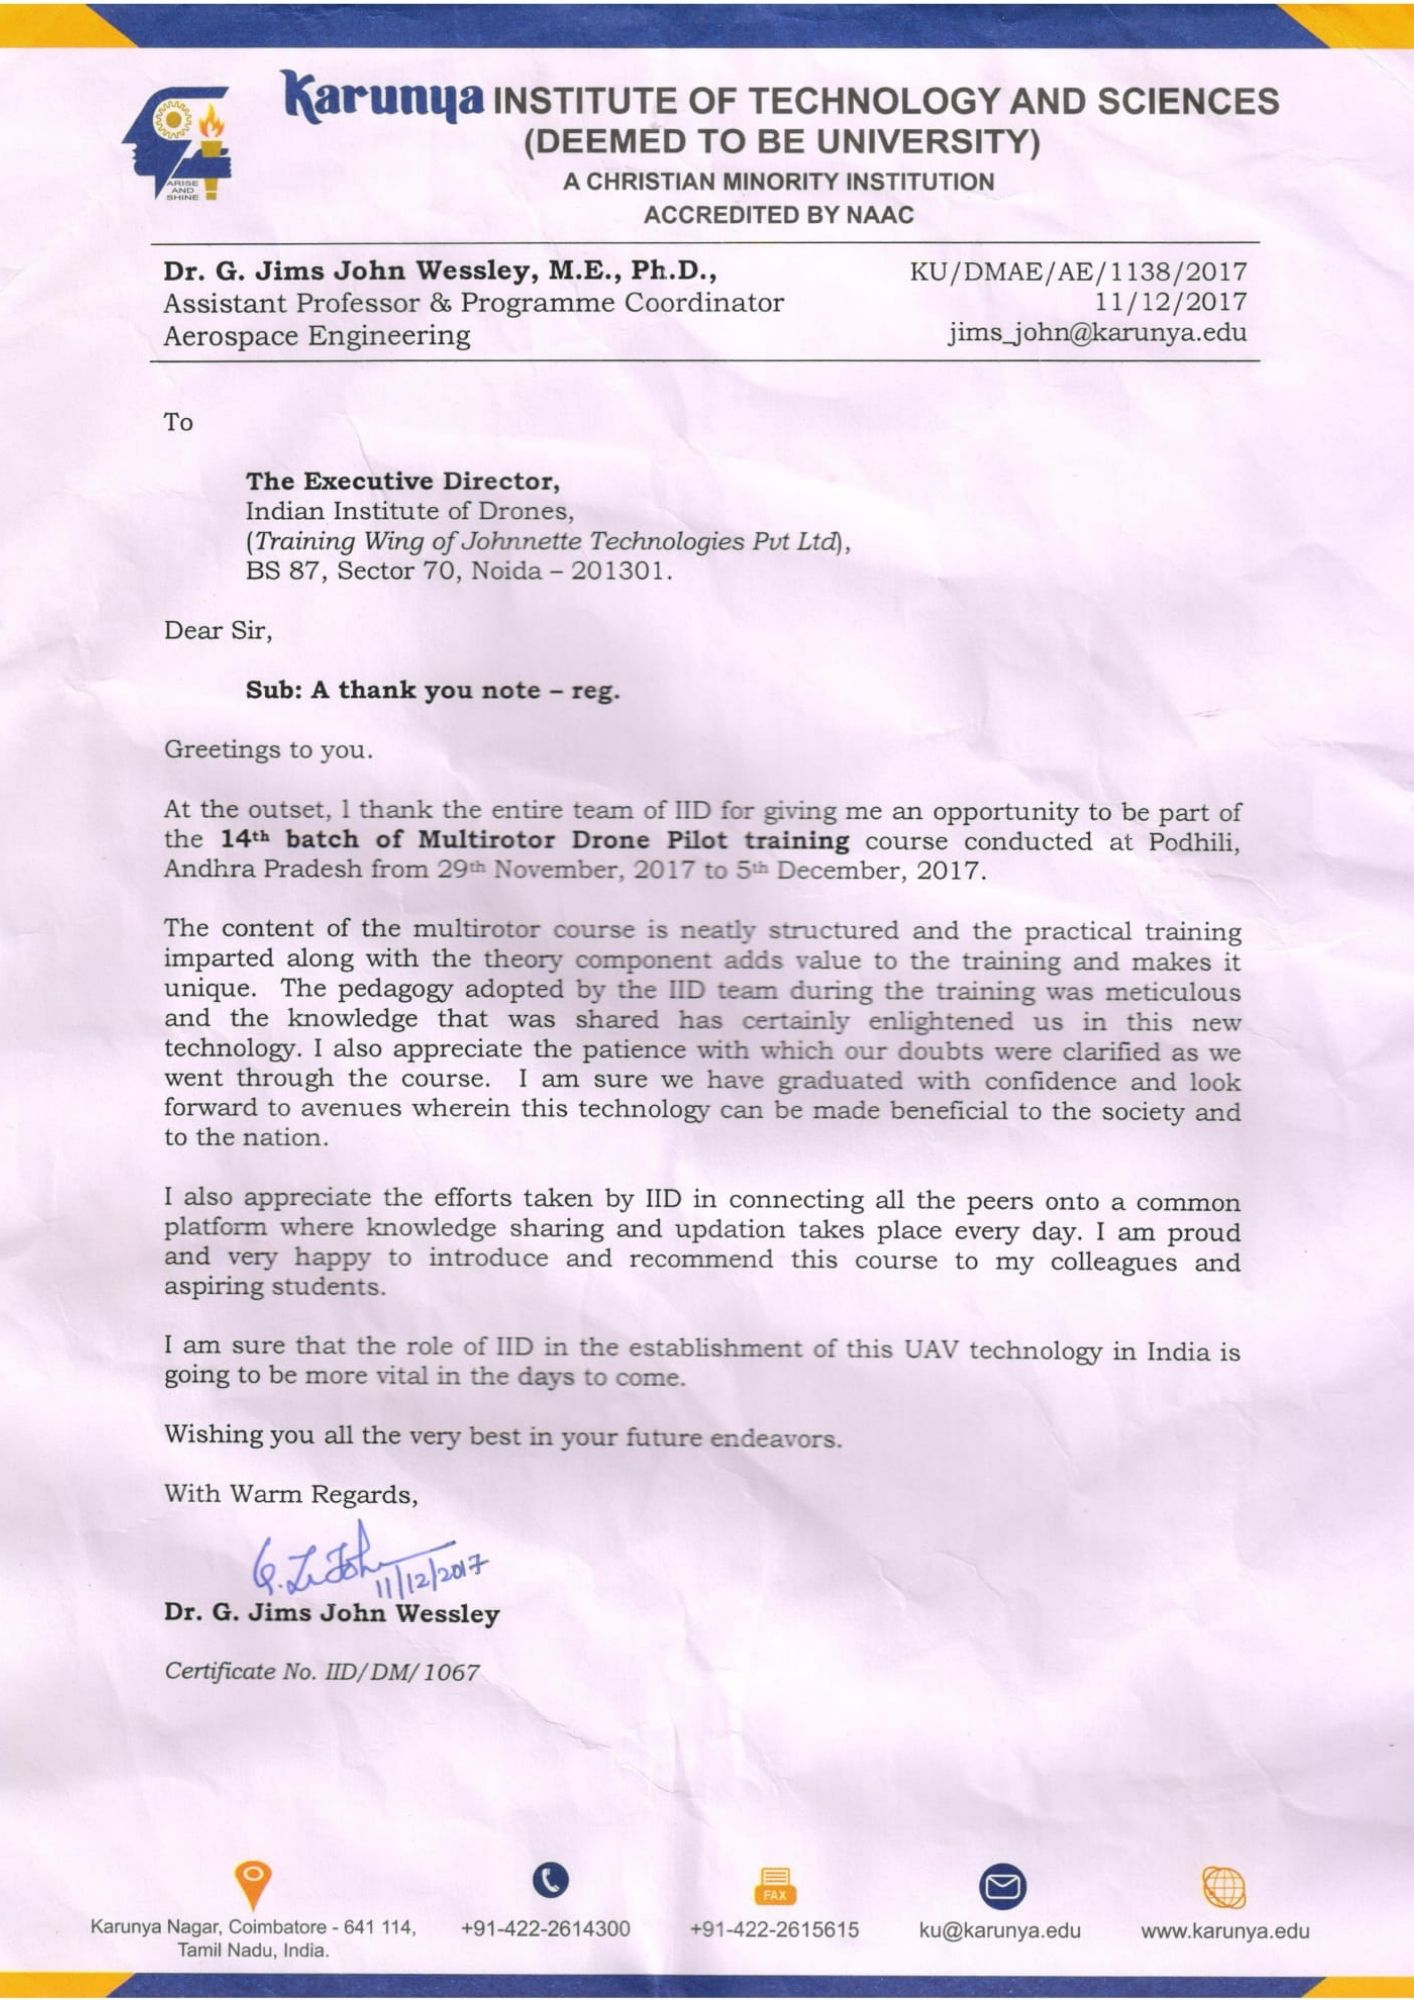 Satisfactory Letter for Drone Training Received from Karunya Institute of Technology and Sciences